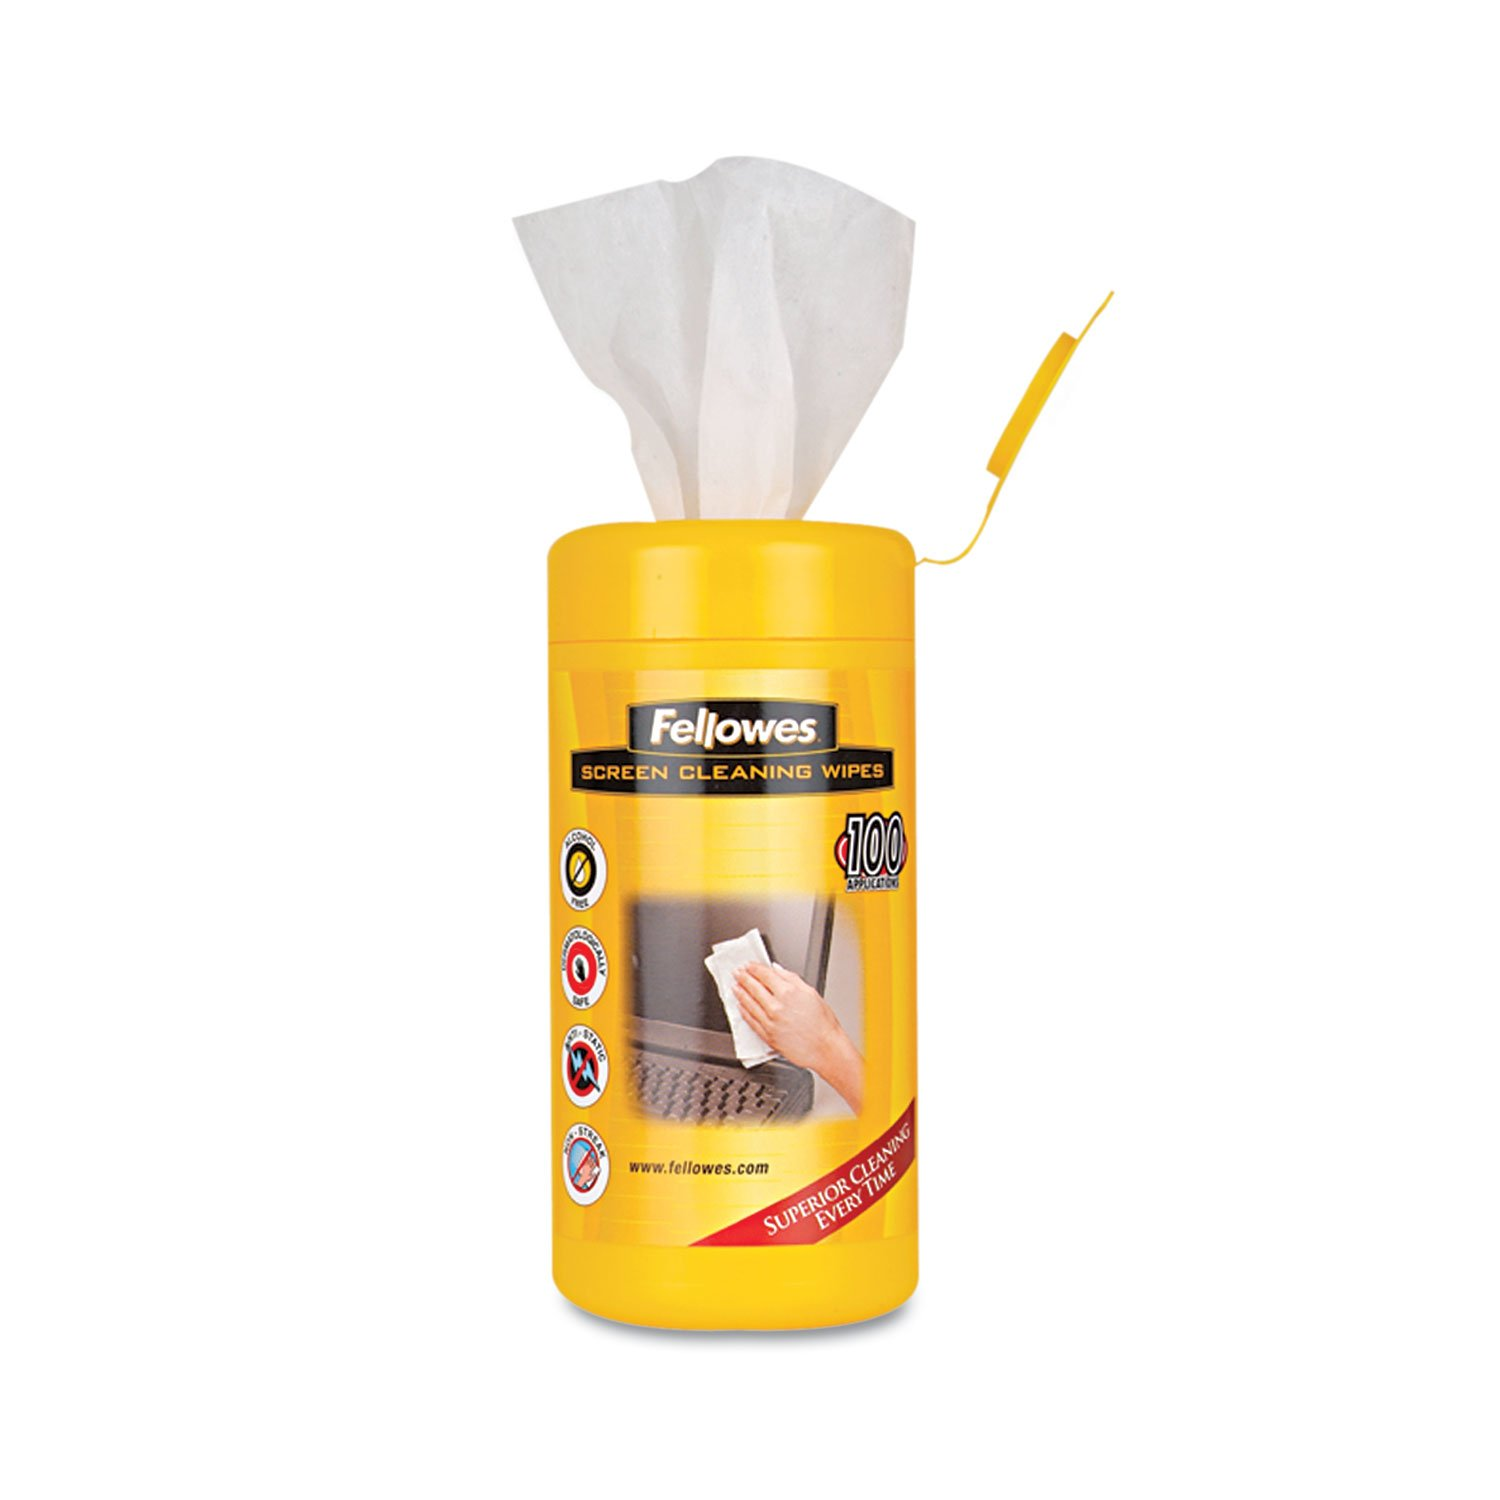 Fellowes 99703 Screen Cleaner Wipes, Alcohol-free, 100 Wipes